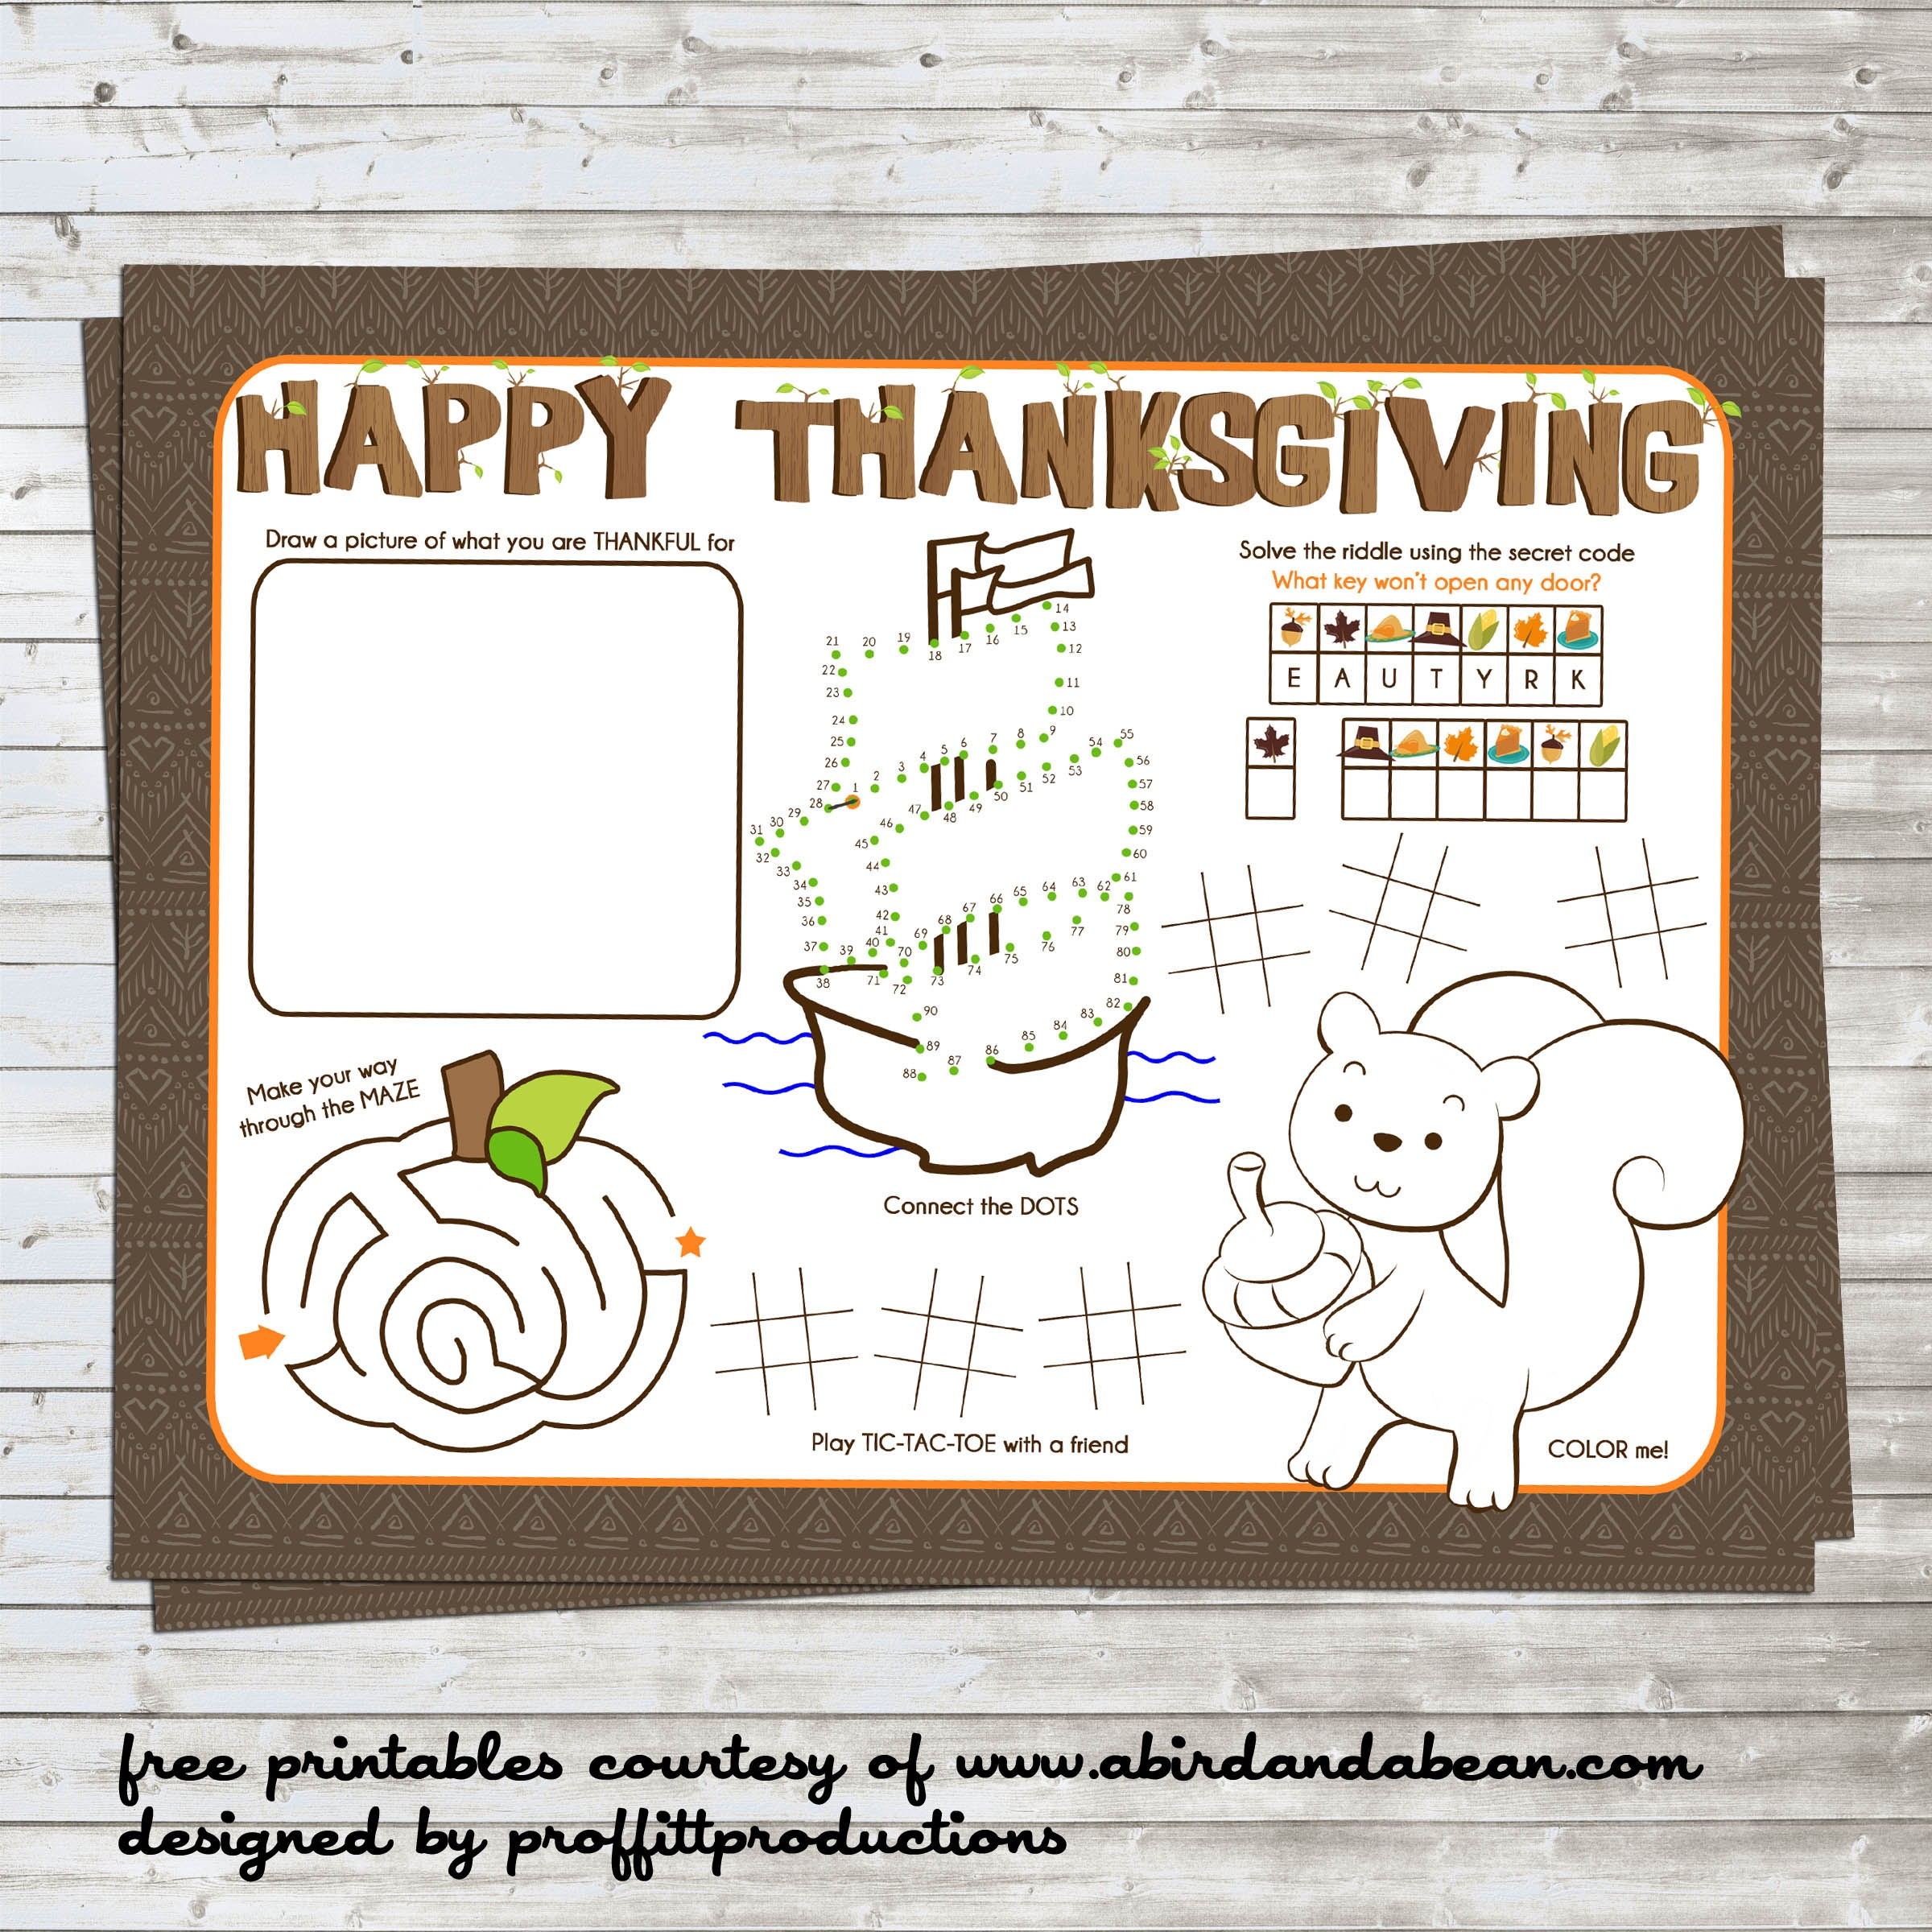 Free Printable :: Thanksgiving Placemat For The Kids - Free Printable Thanksgiving Images